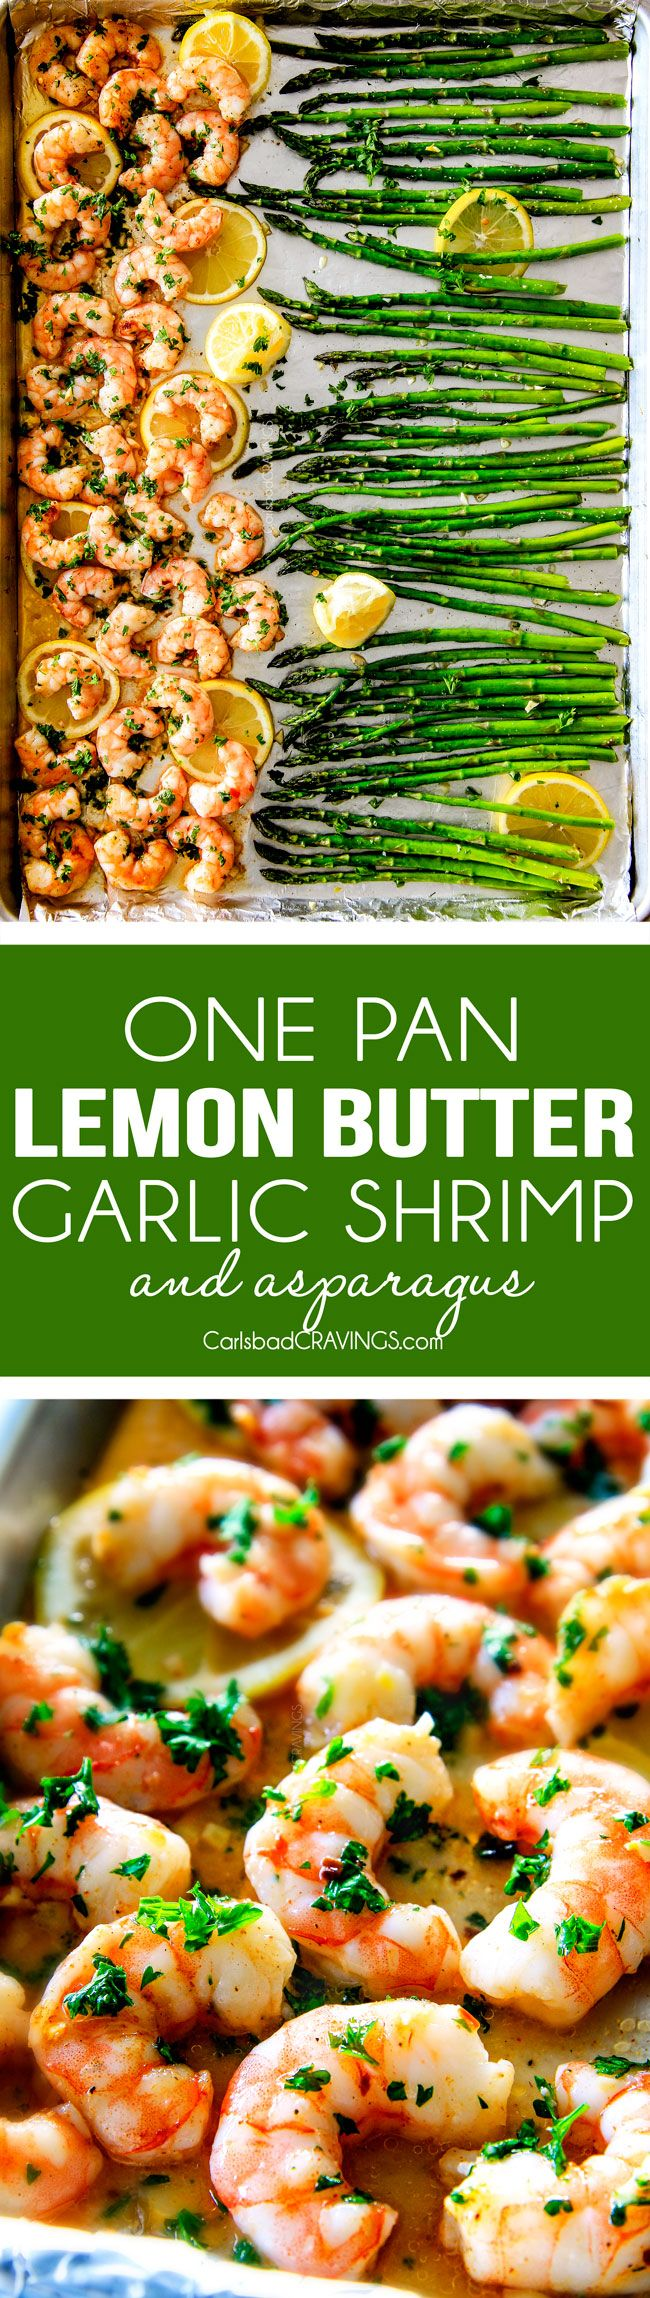 One Pan Roasted Lemon Butter Garlic Shrimp and asparagus